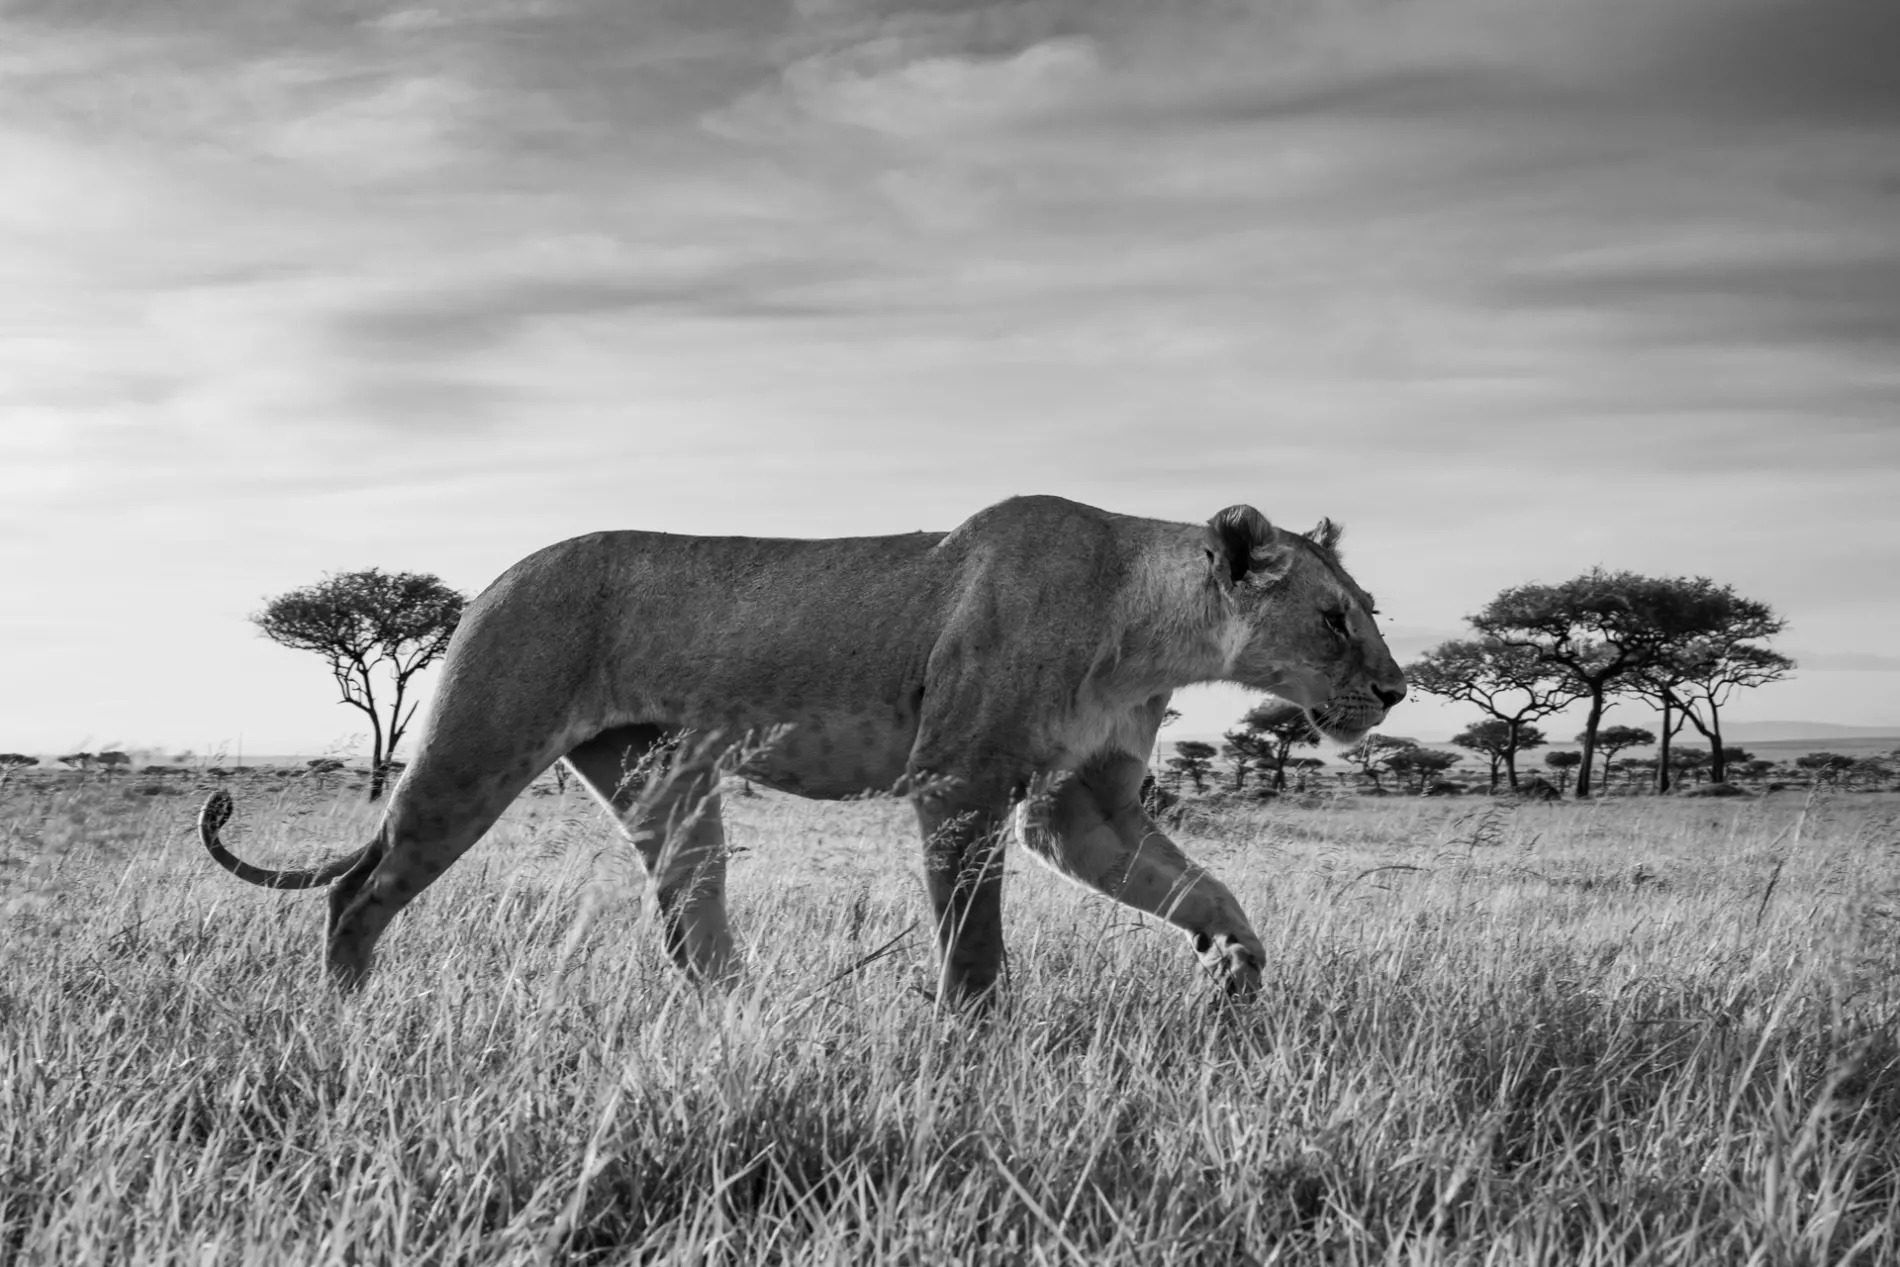 Lioness black and white